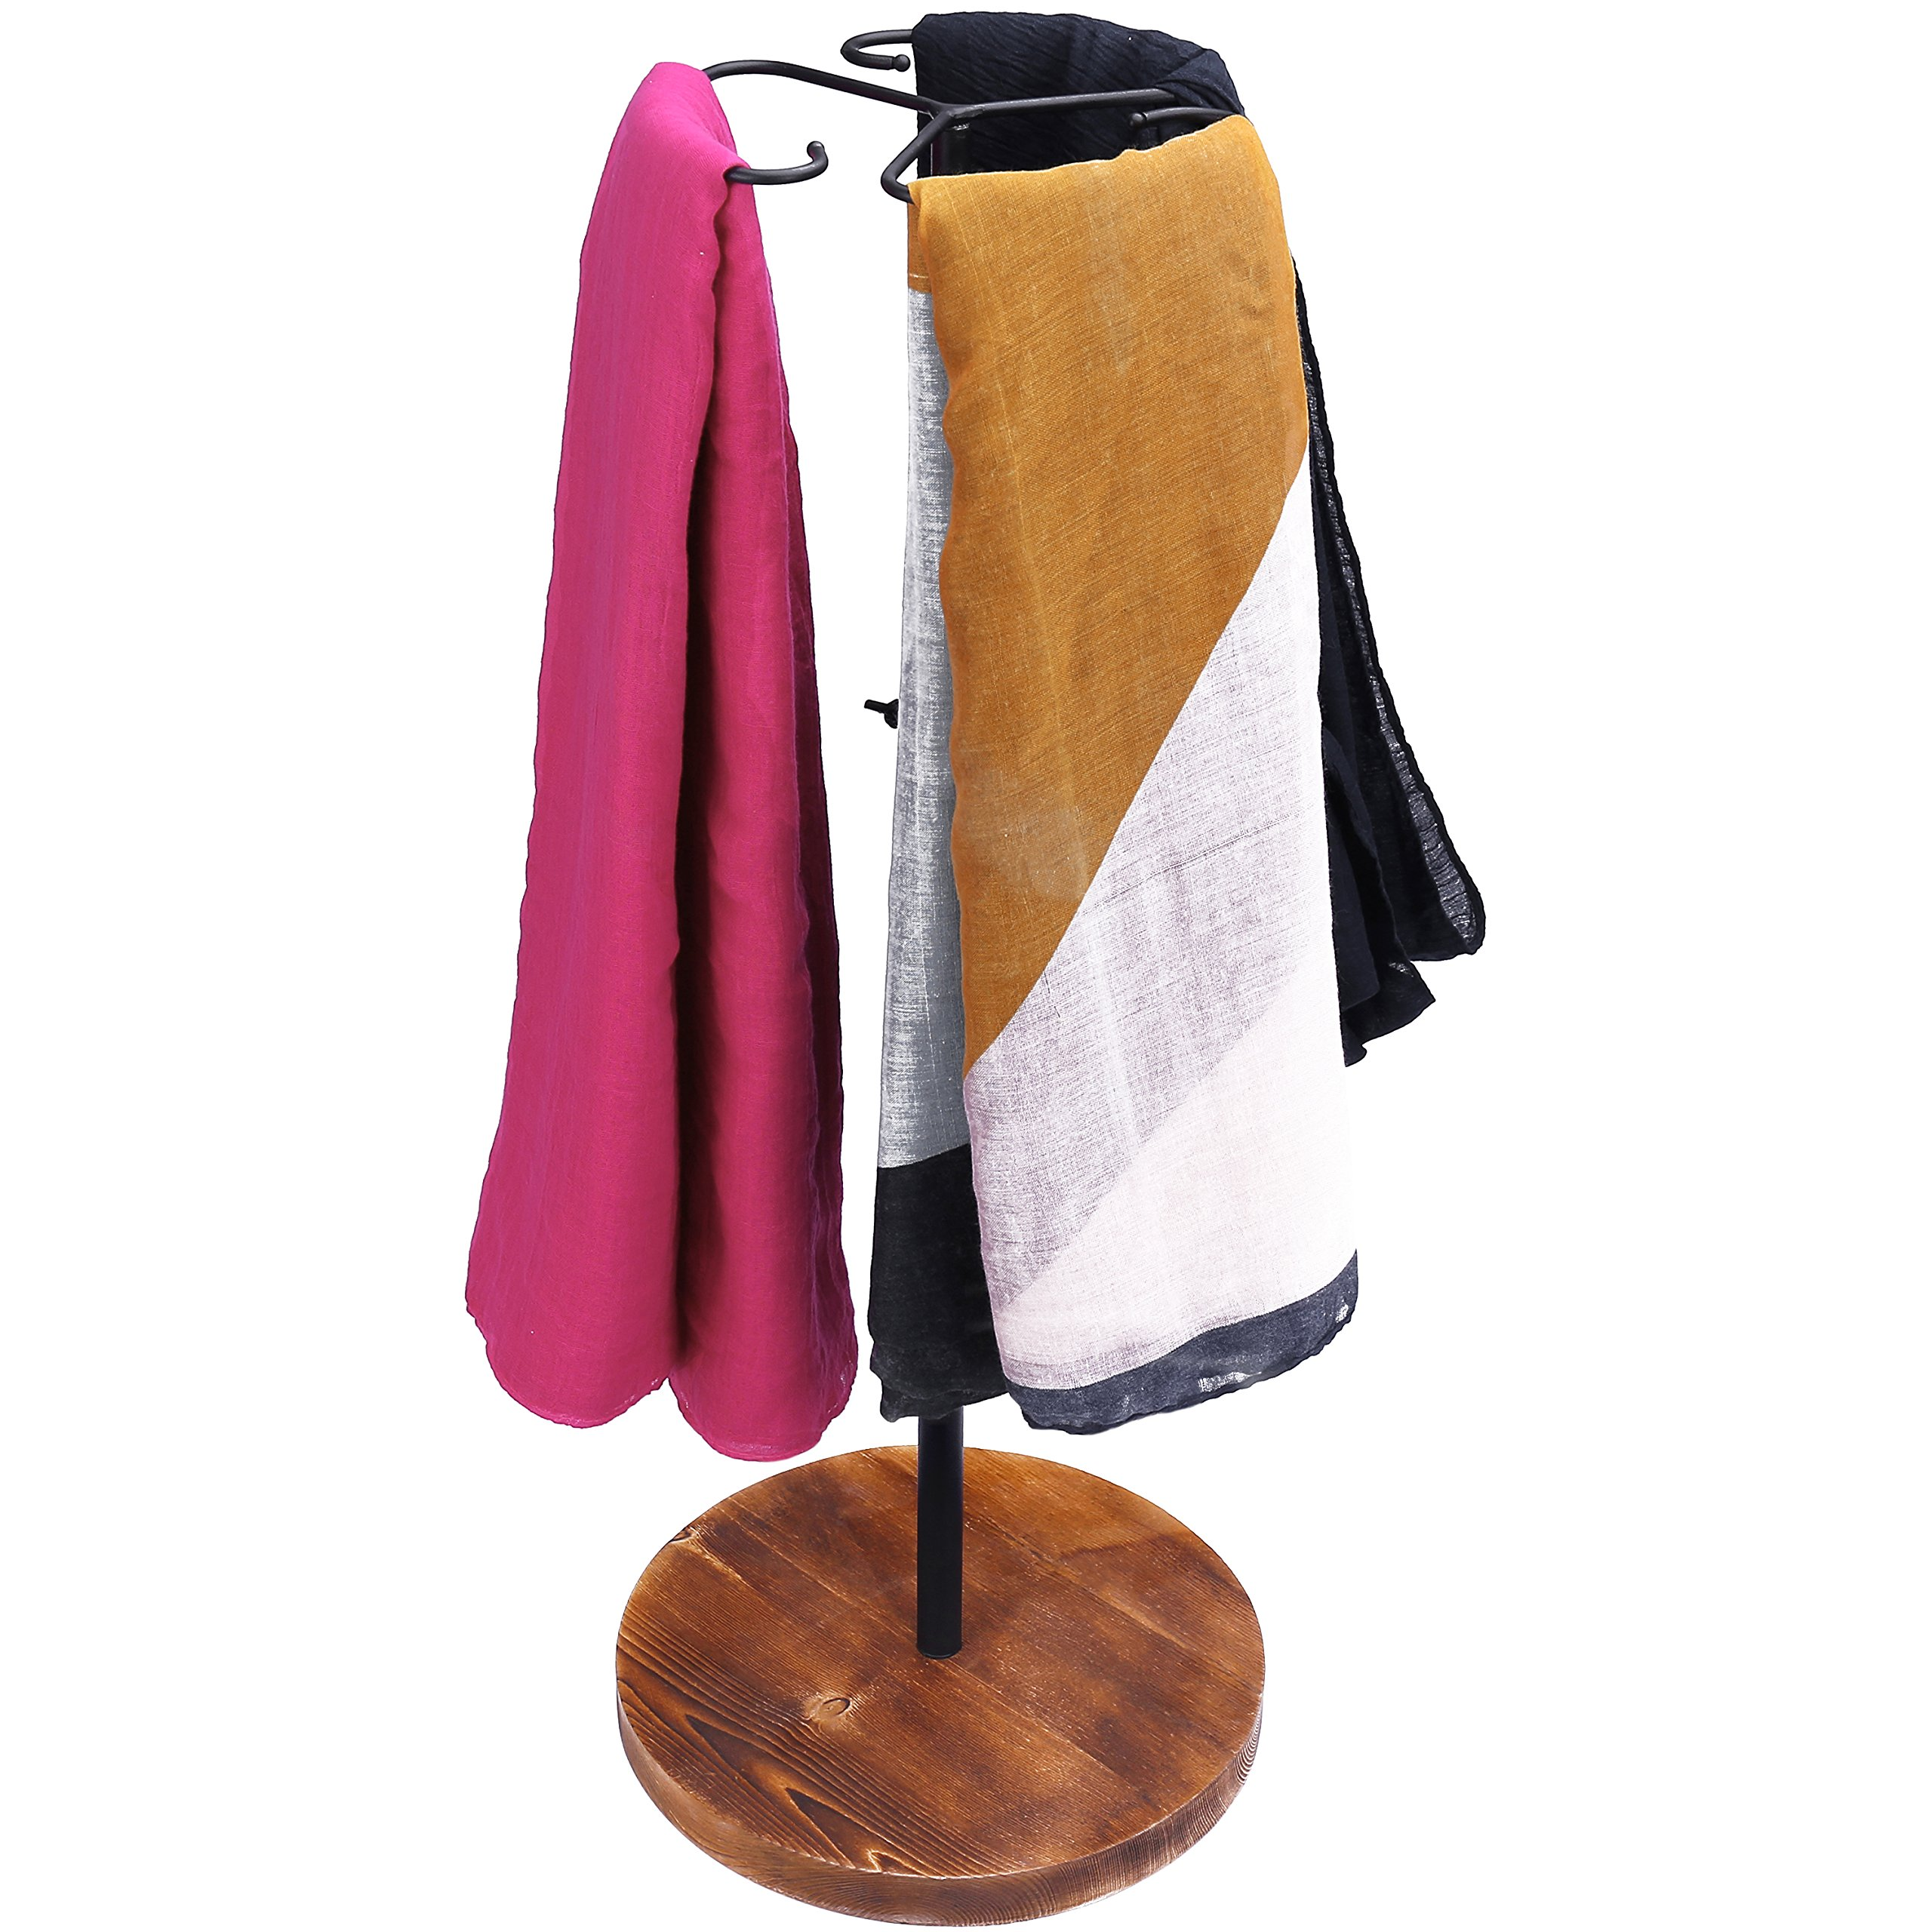 MyGift 24-Inch Adjustable Height Scarf Display Rack with Wooden Base by MyGift